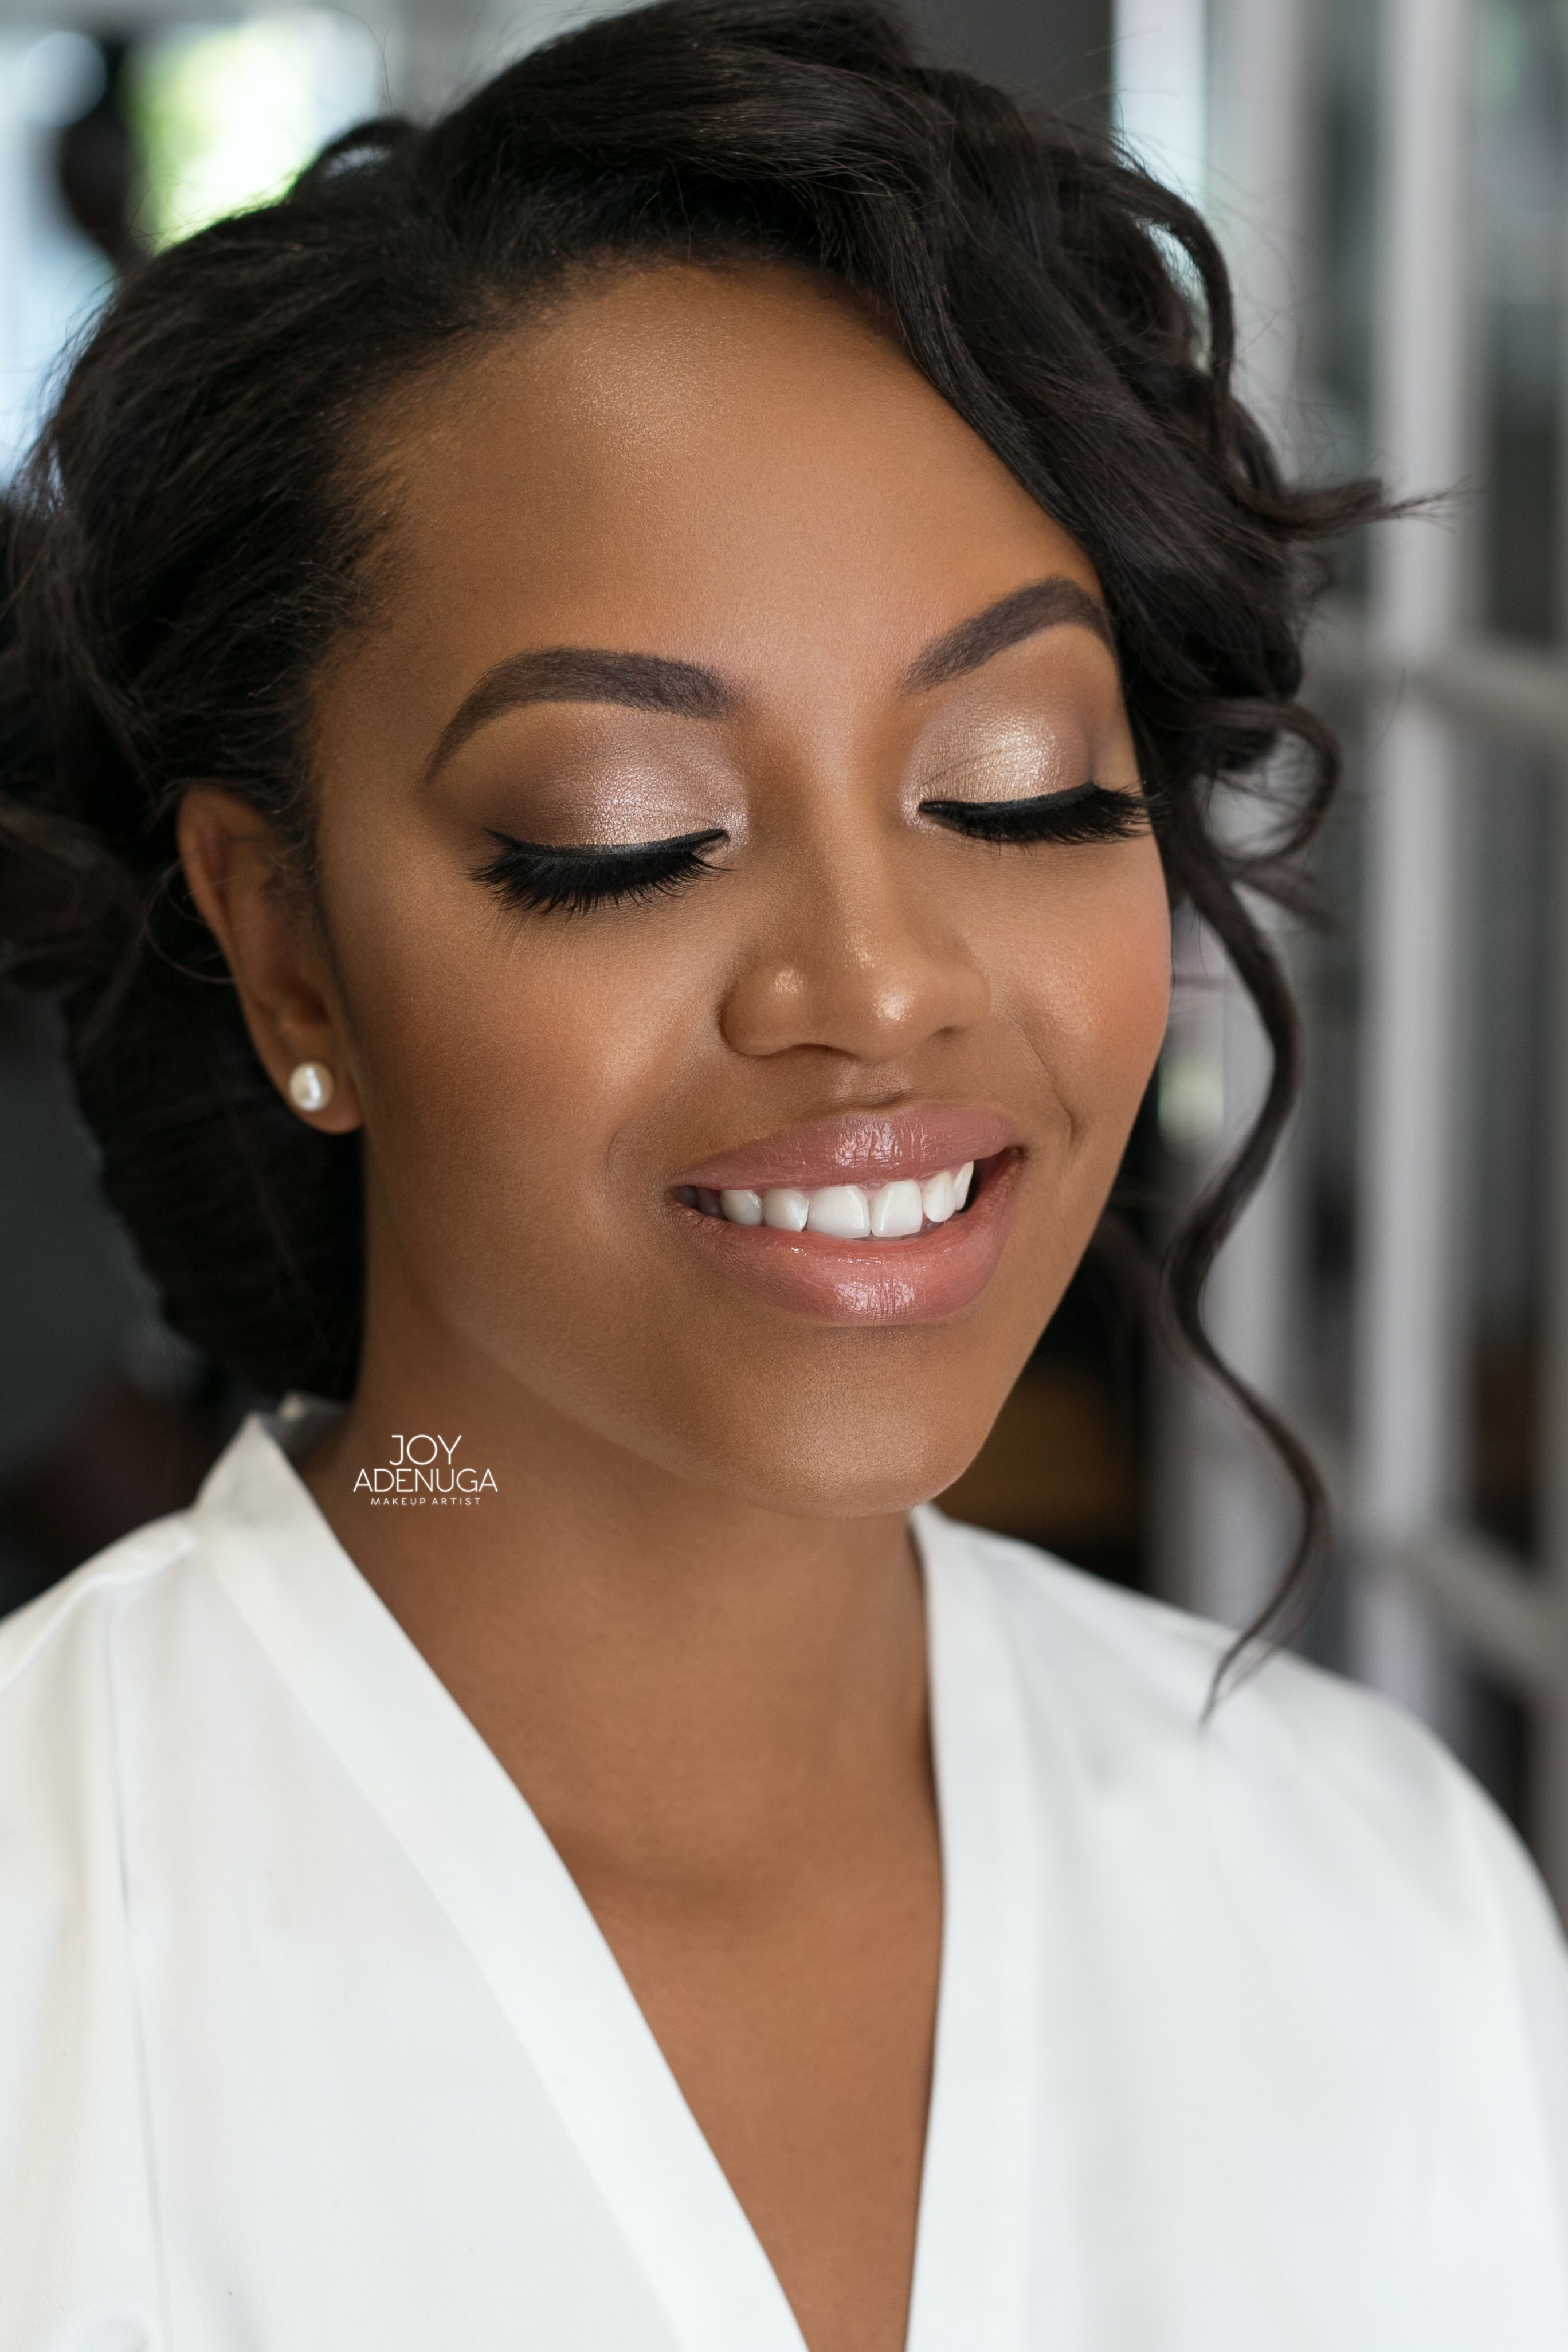 Attractive 20 Idees Short Girl Coiffures Face Shapes Maquillage Mariee Africaine Coiffure Et Maquillage De Mariage Maquillage Mariee Black